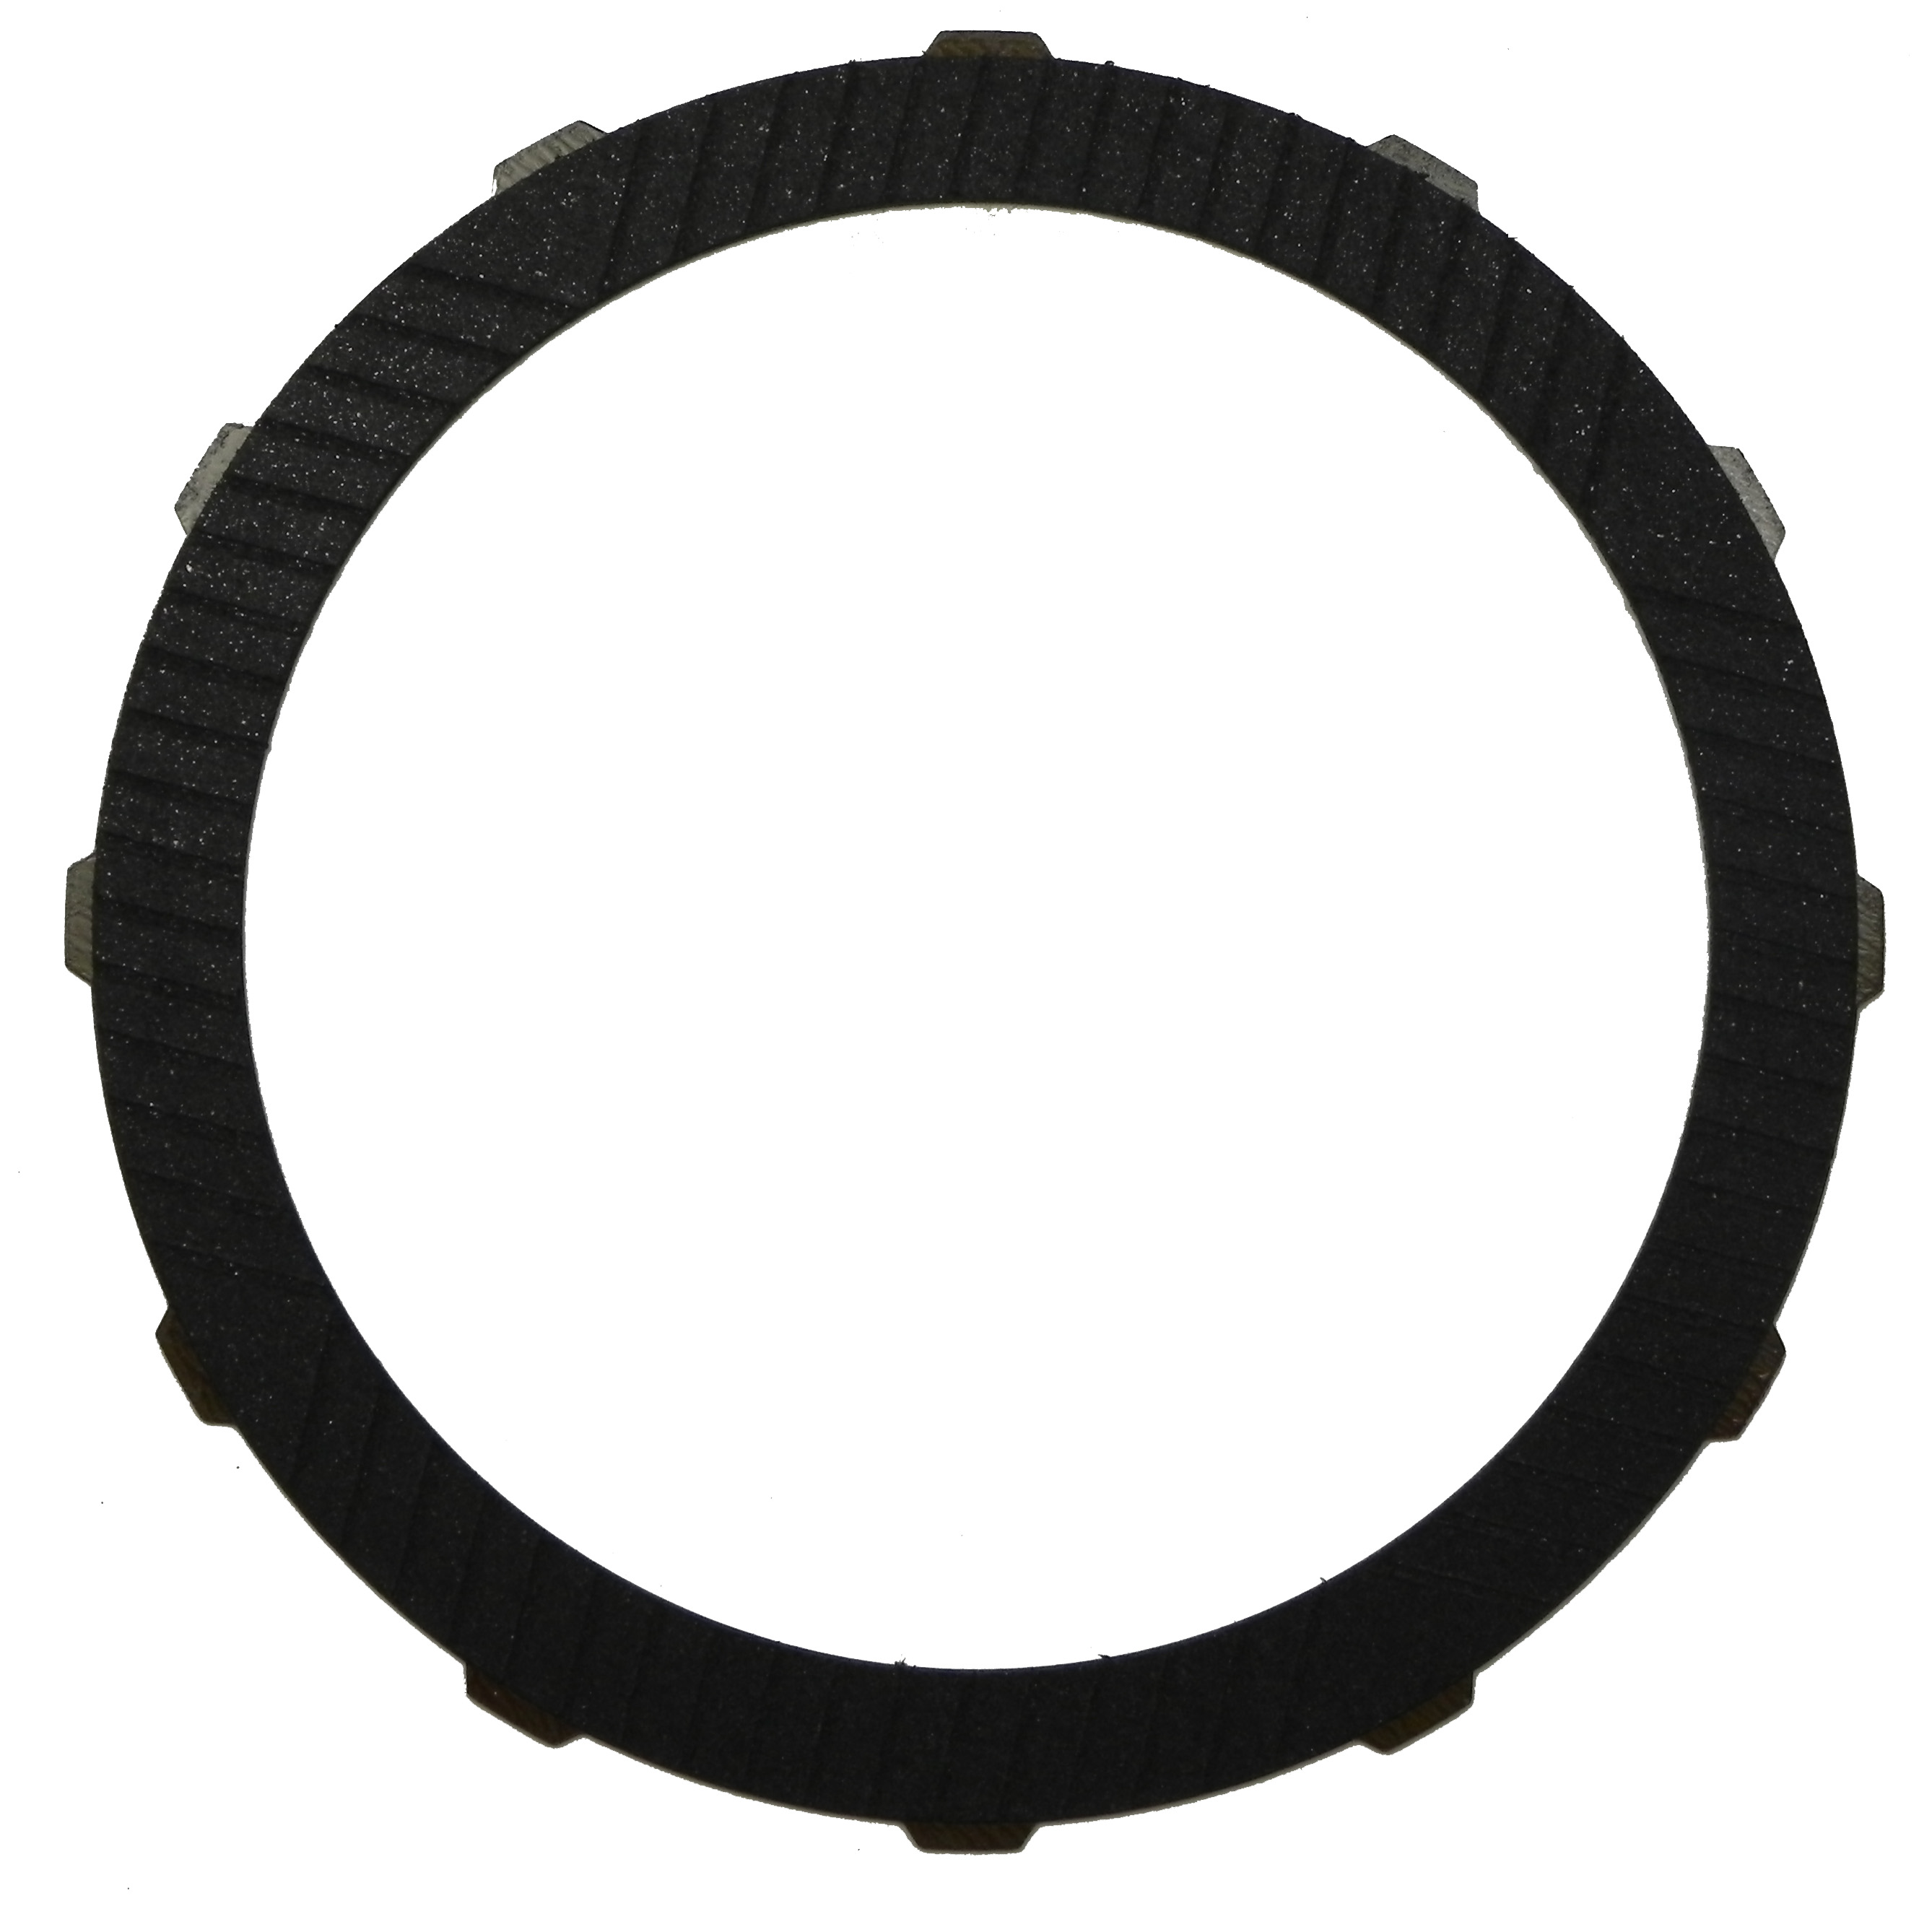 R558151 | 1998-ON Friction Clutch Plate High Energy Reverse Single Sided, OD Spline High Energy DPO